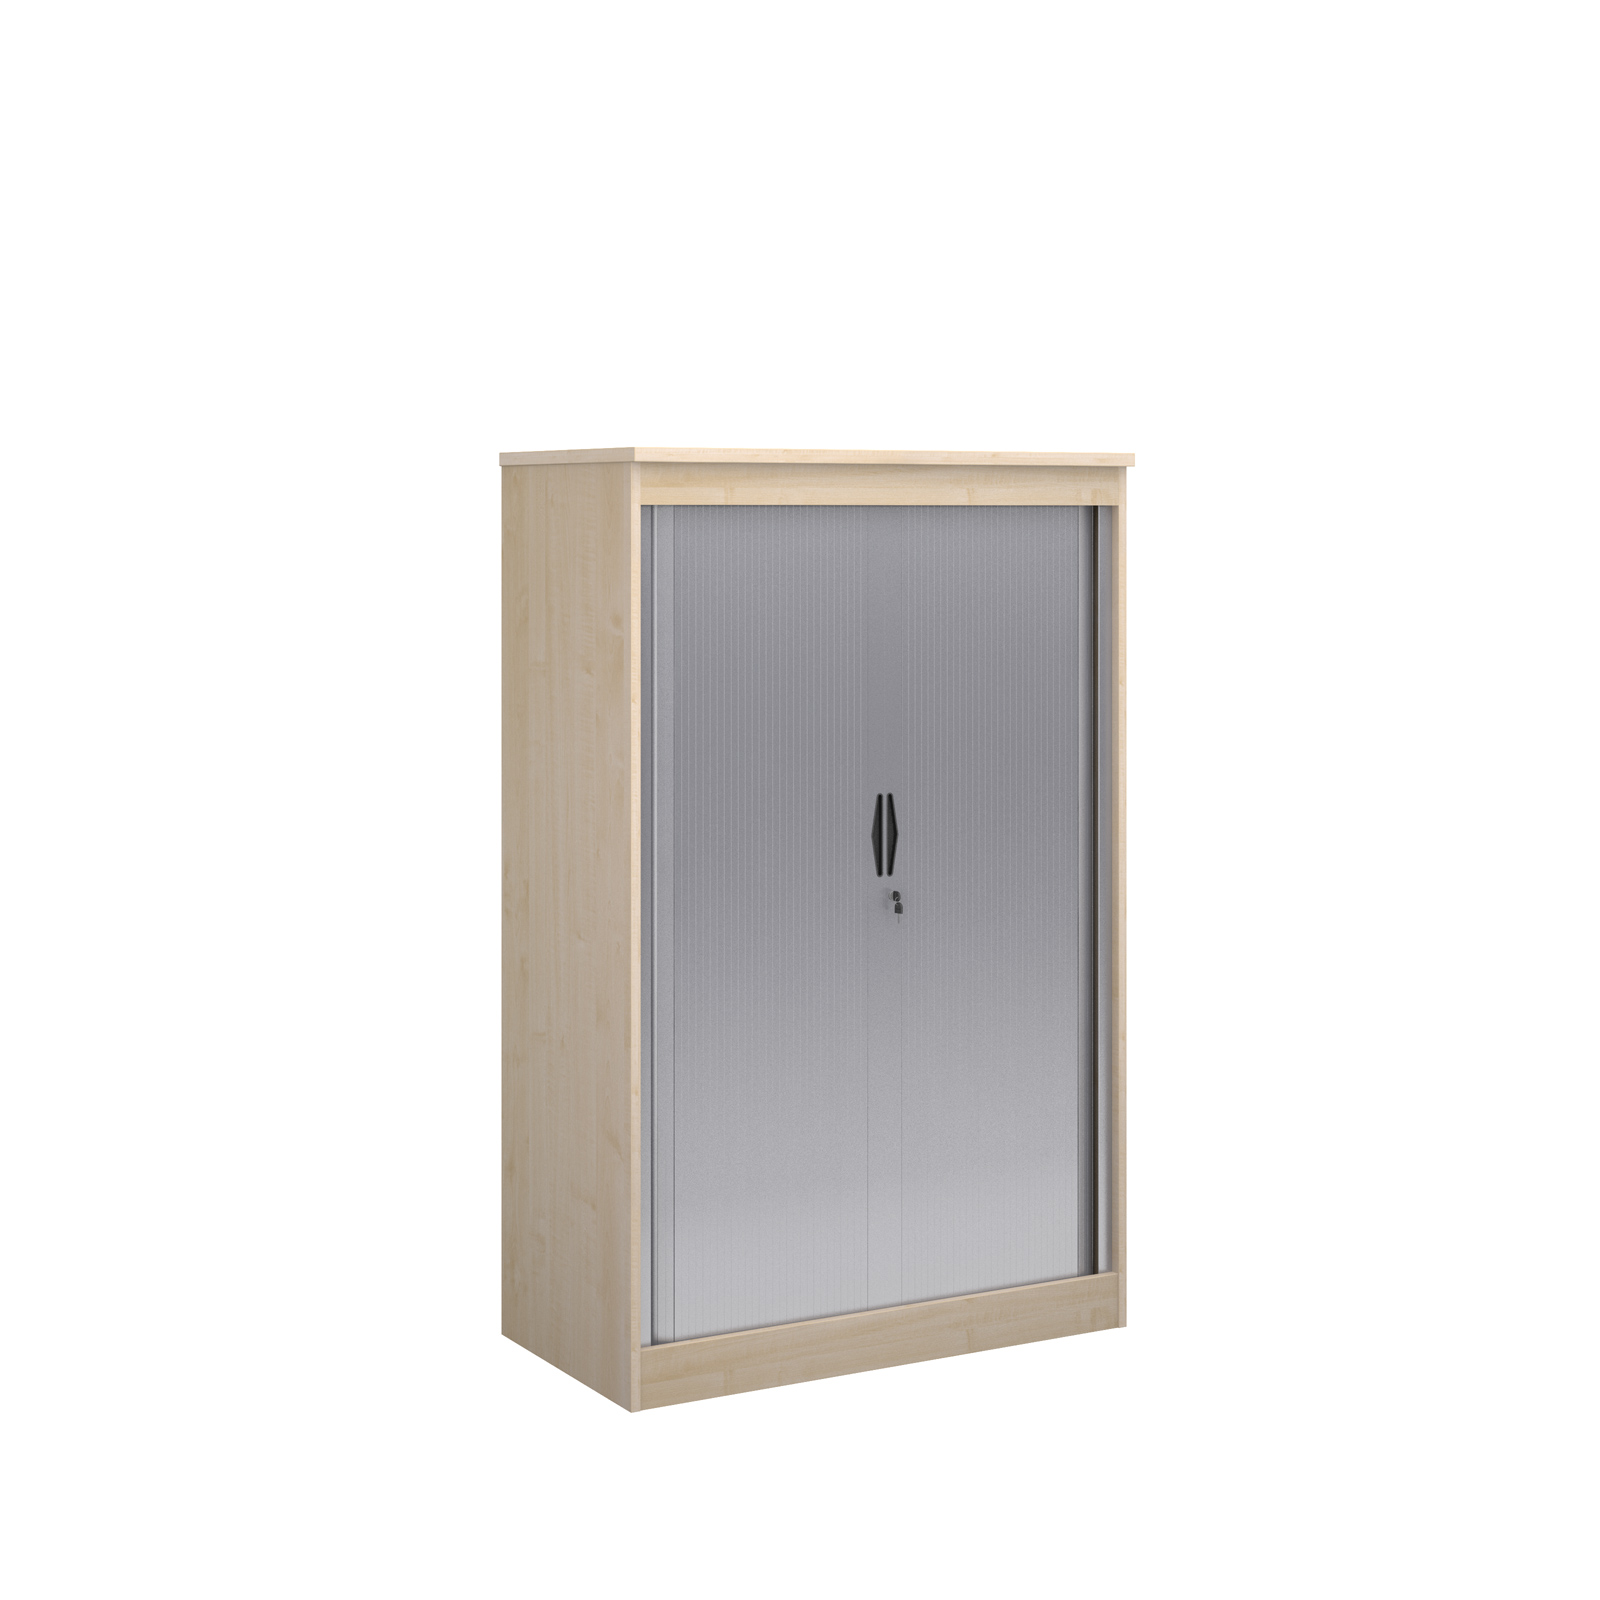 1600mm high system horizontal tambour door cupboard in maple